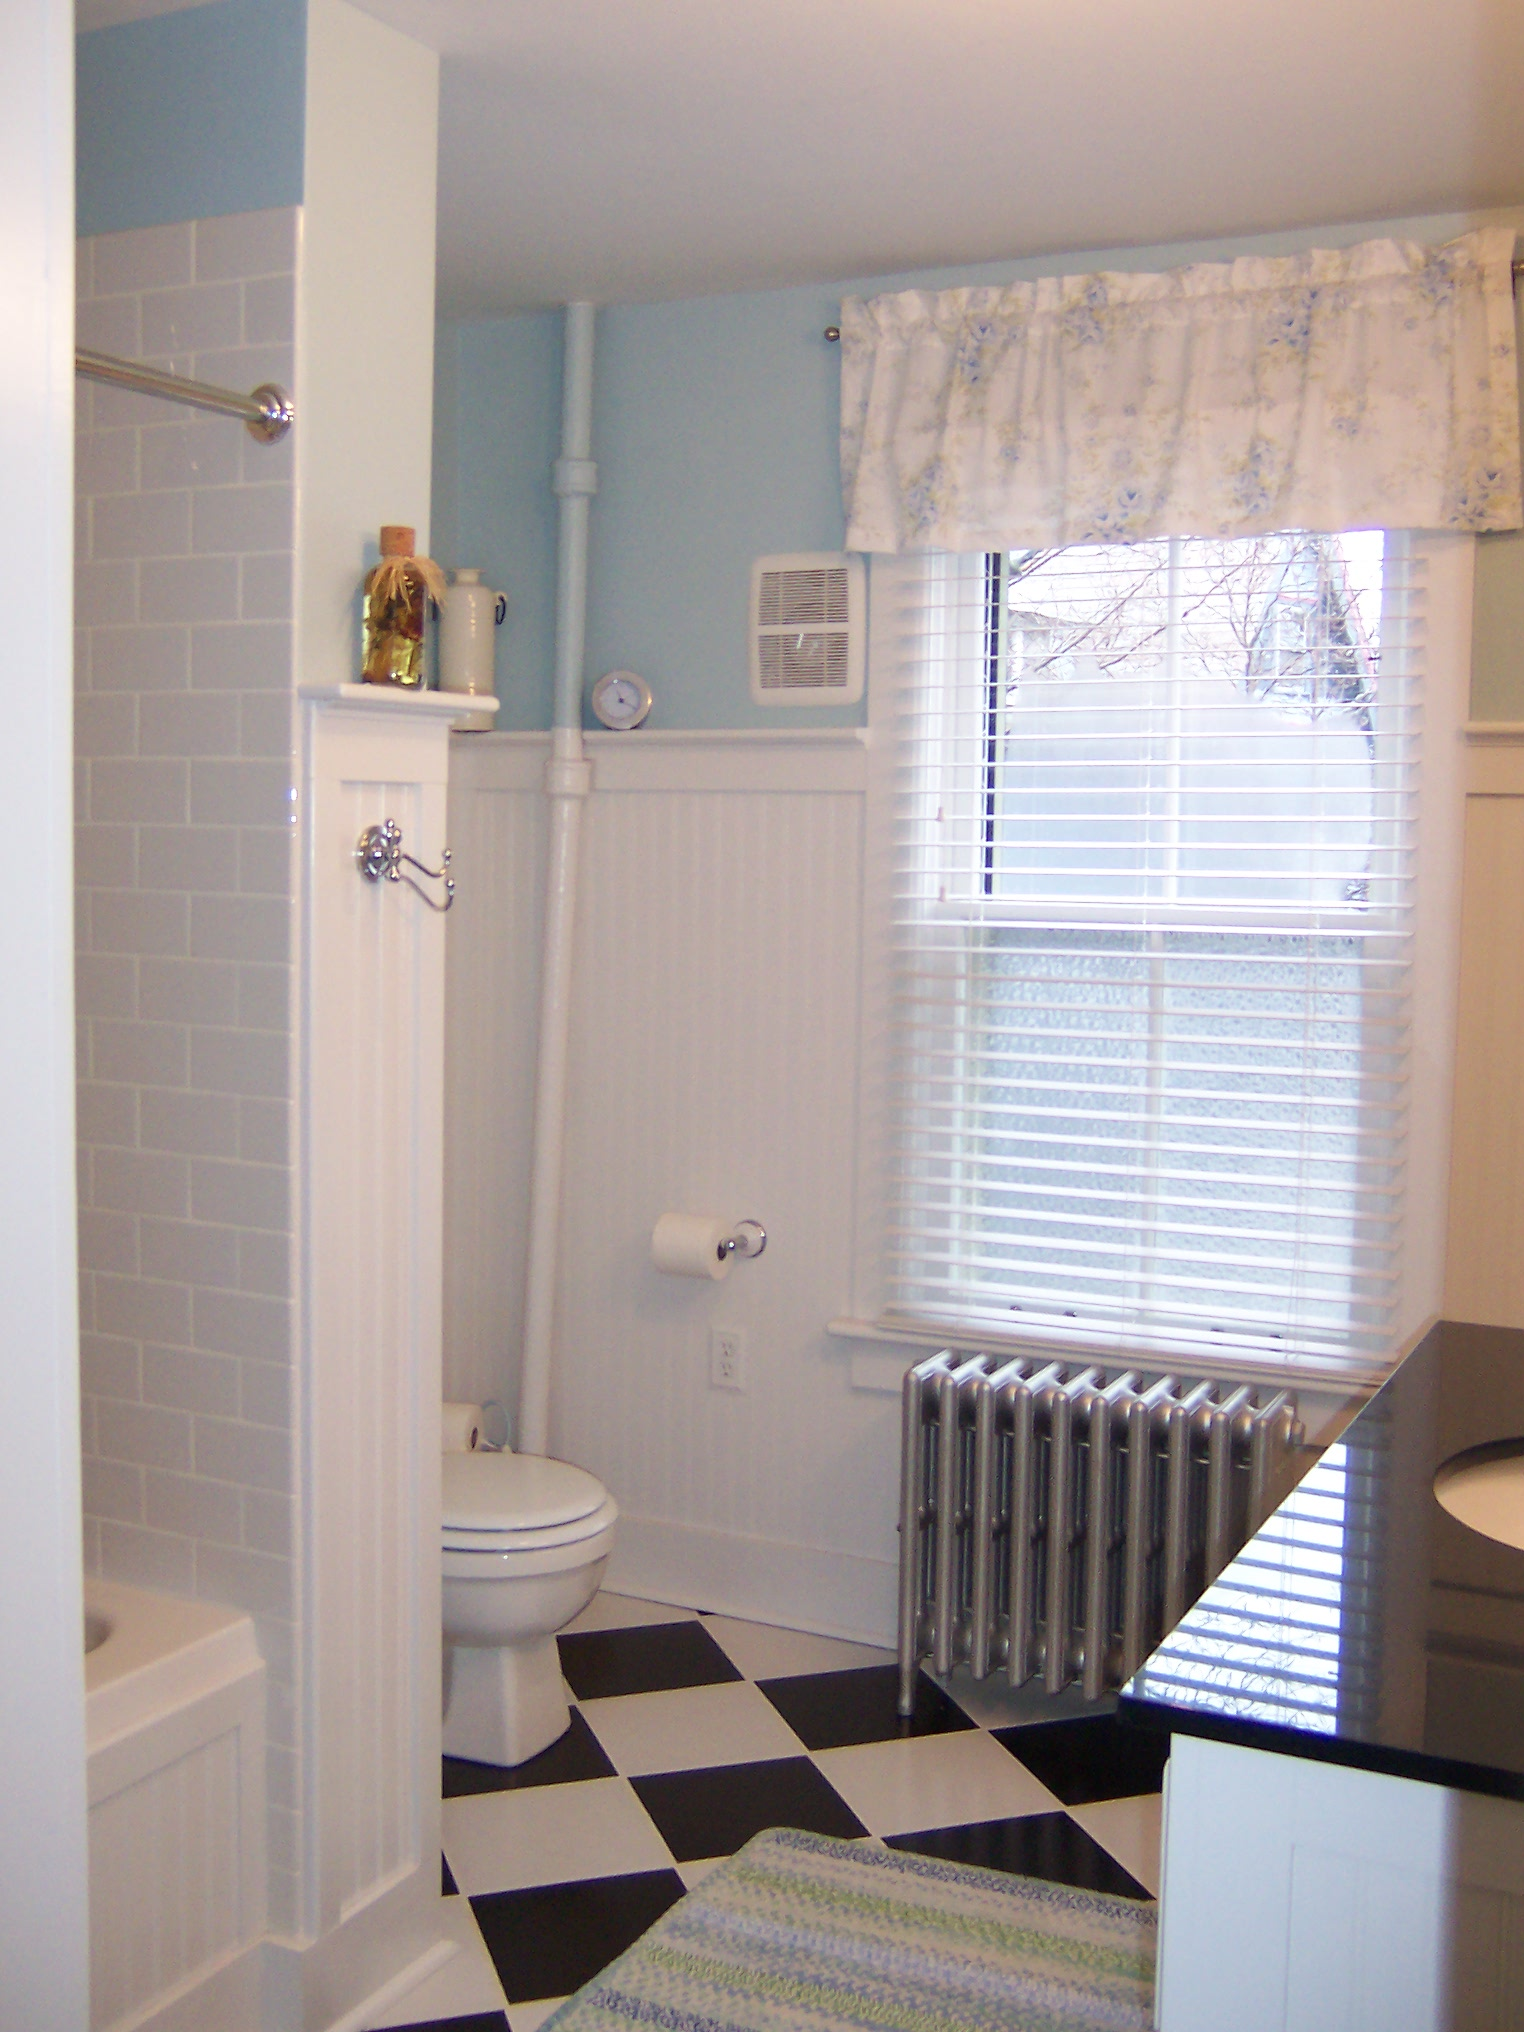 Victorian Bathroom After Renovation